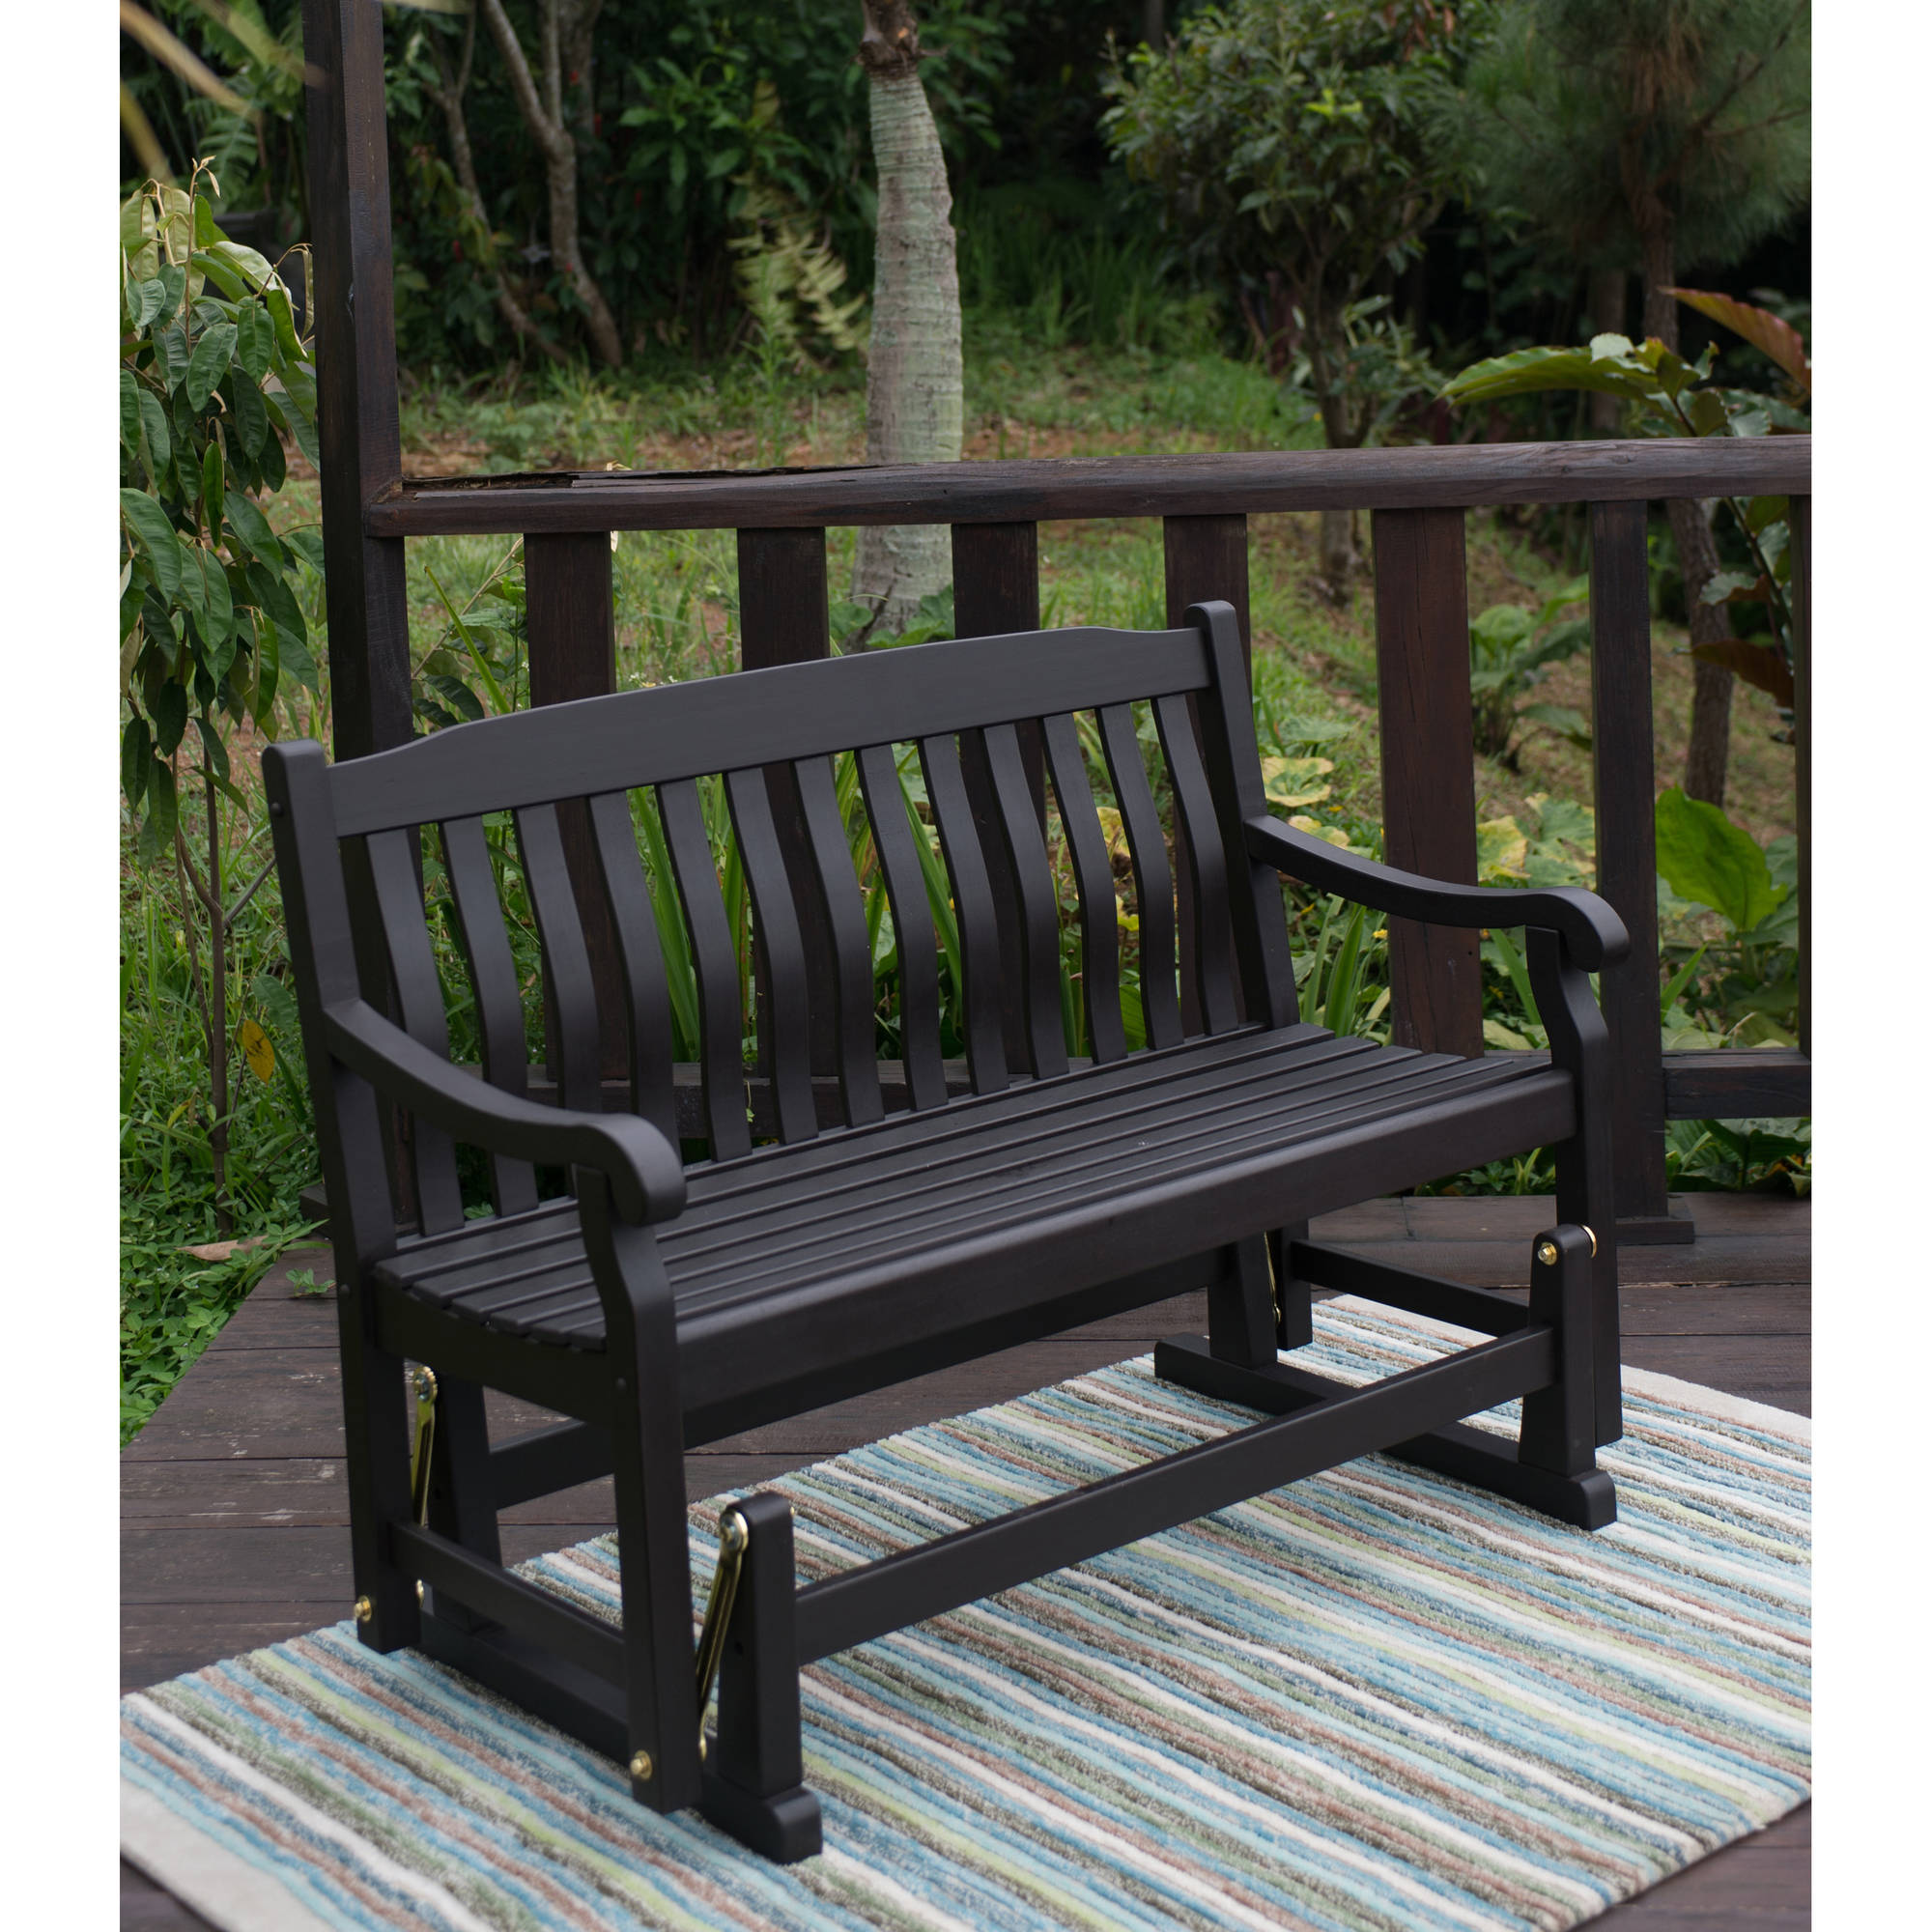 Beau Better Homes U0026 Gardens Delahey Outdoor Glider Bench, Dark Brown    Walmart.com